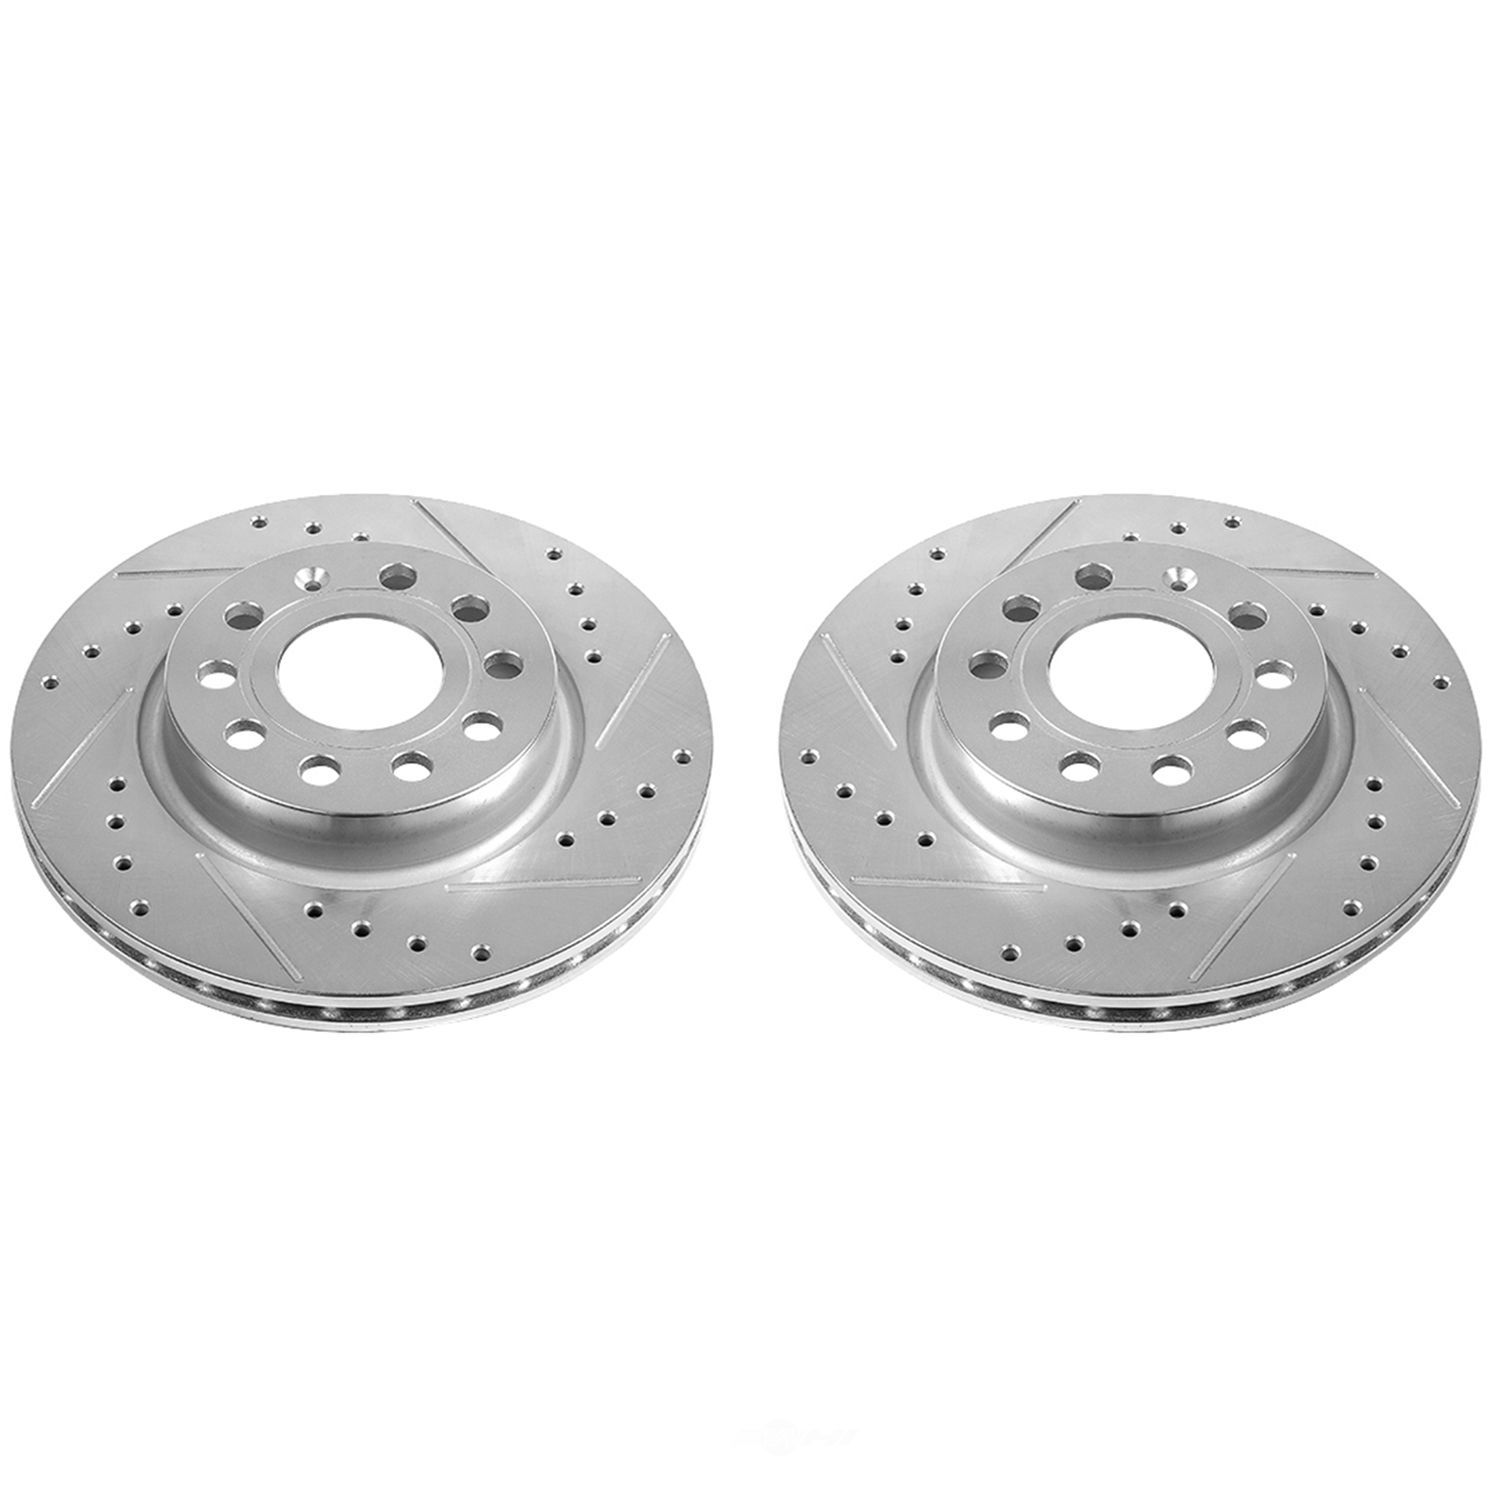 POWER STOP - Extreme Performance Drilled & Slotted Brake Rotor (Front) - PWS EBR1289XPR